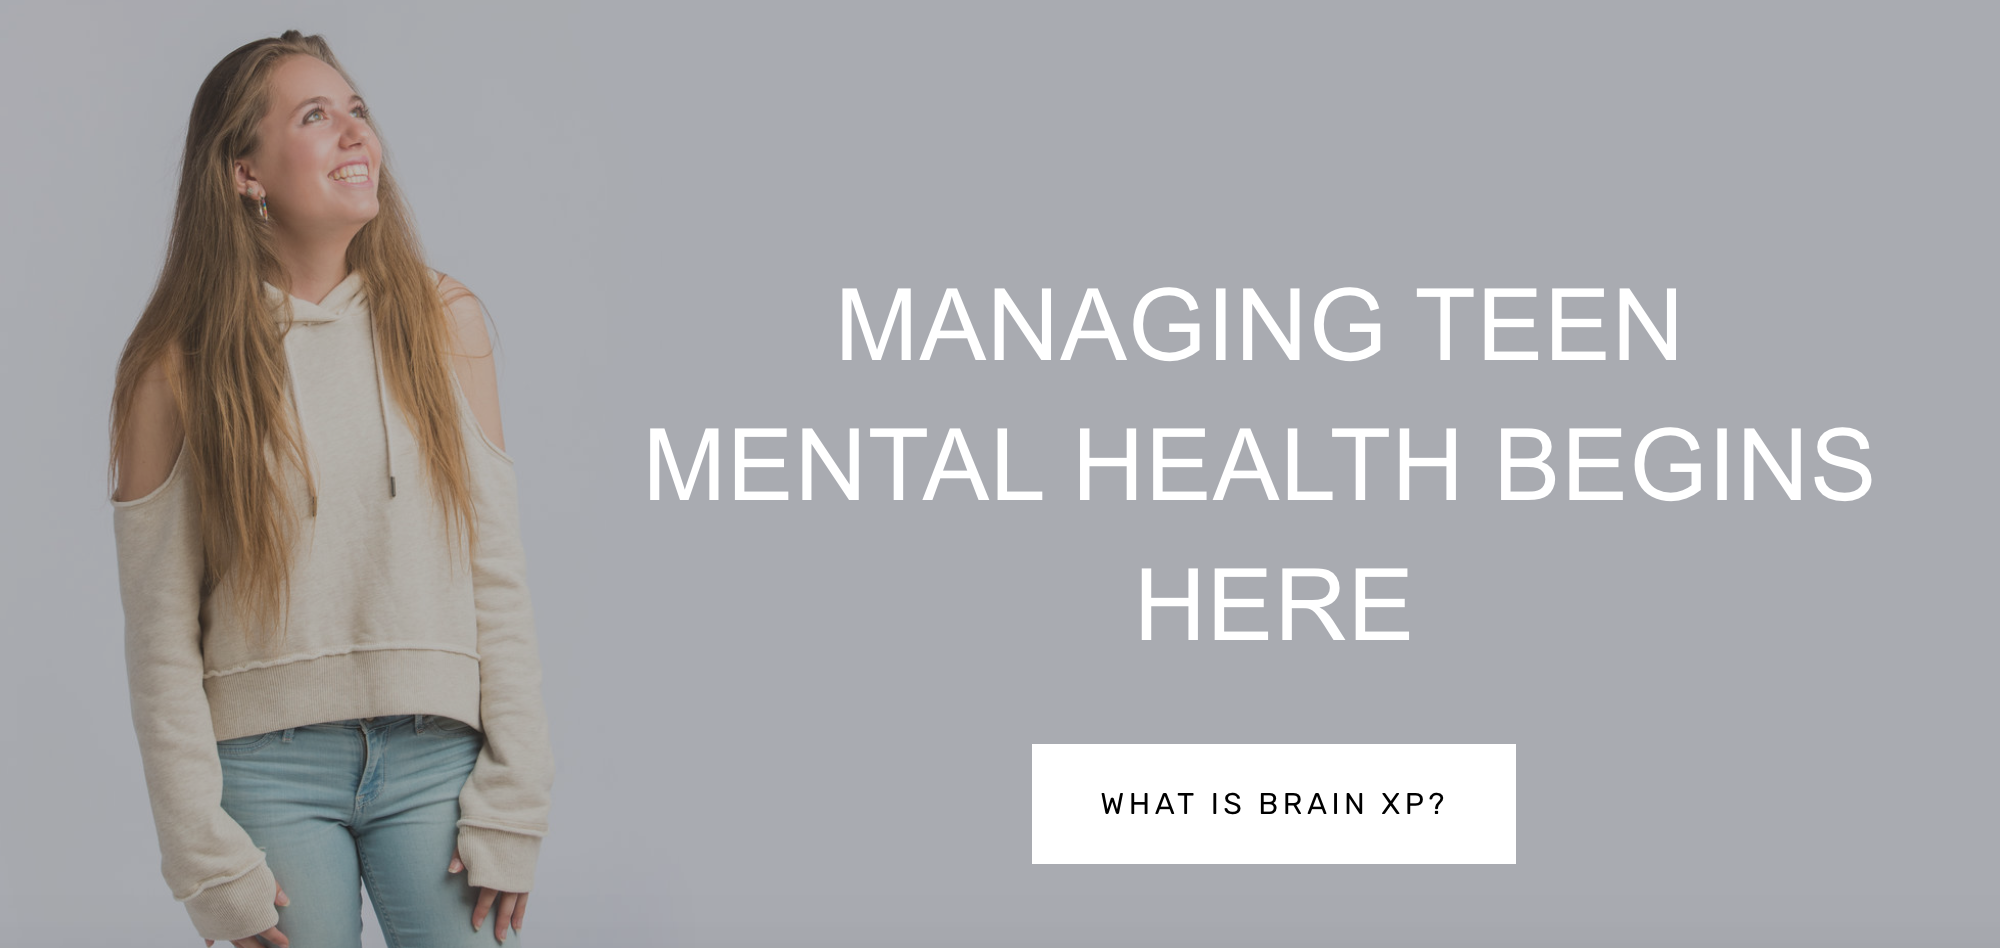 BRAIN XP Website - I'm sure you have discovered the fifth offering because you are already here! This website offers information for teens & parents about teen mental health. There are helpful resources to connect locally AND an amazing Teen Toolbox of Coping Skills.